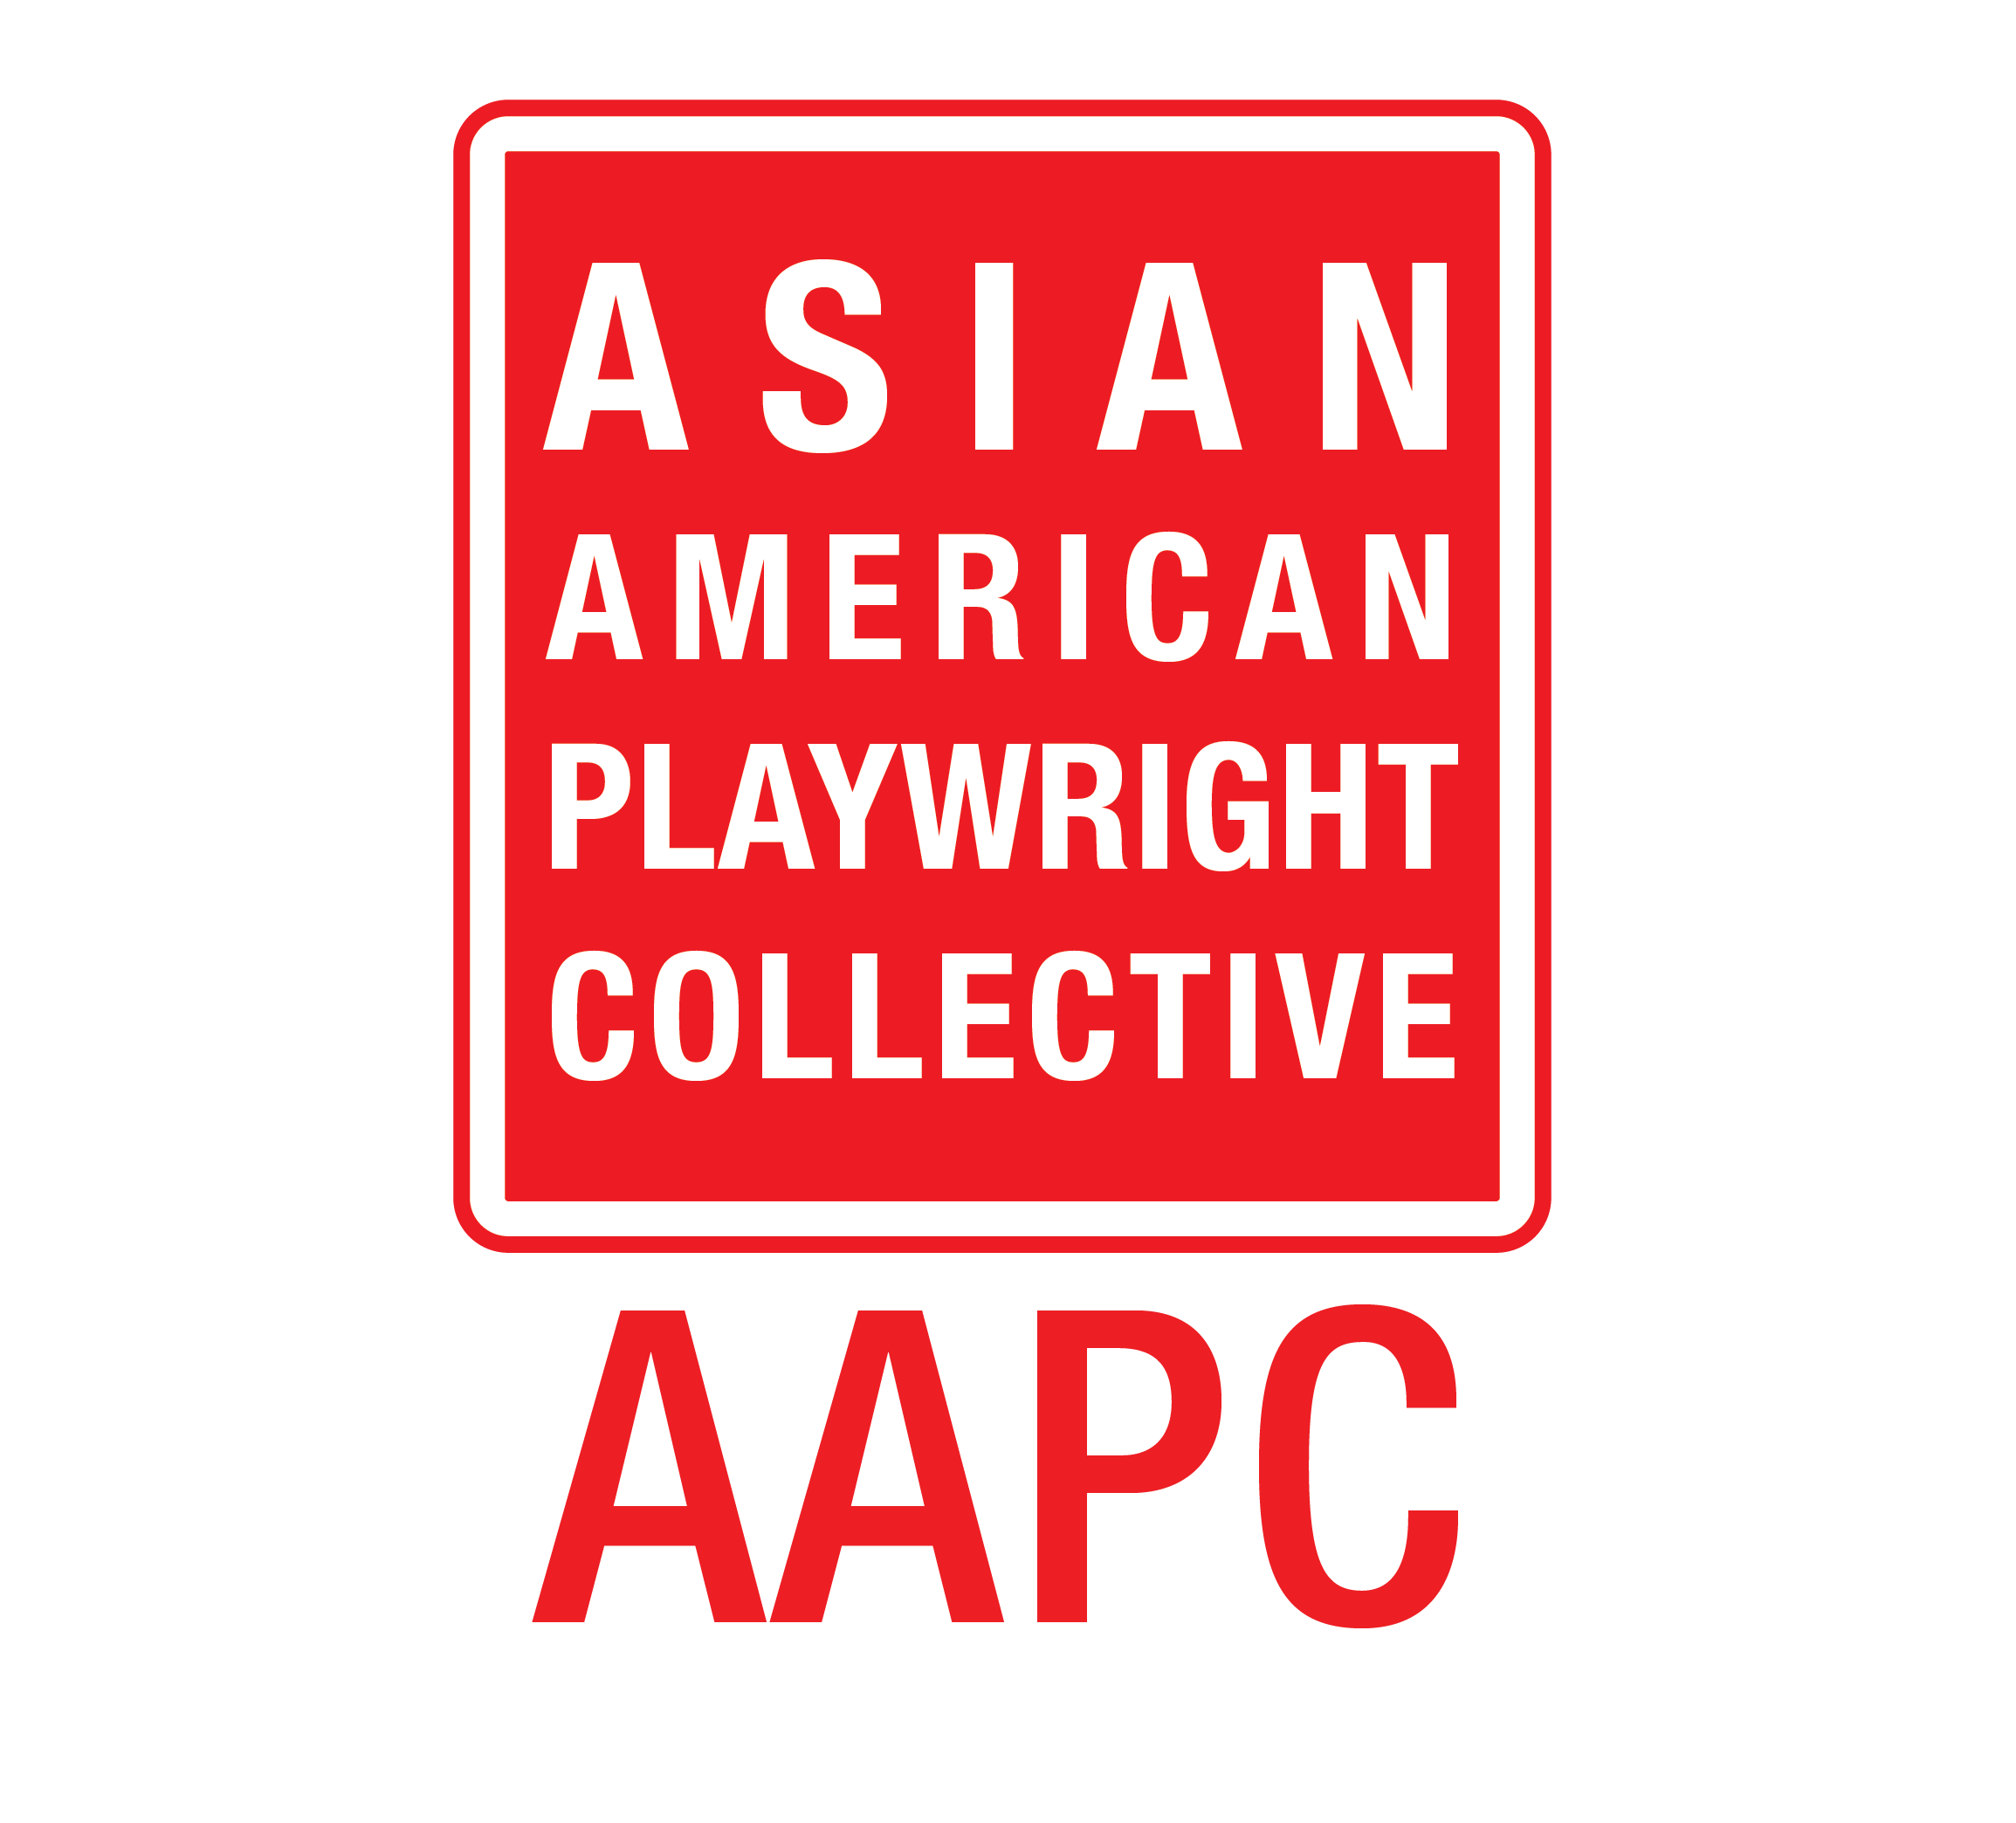 text: Asian American Playwright Collective, AAPC